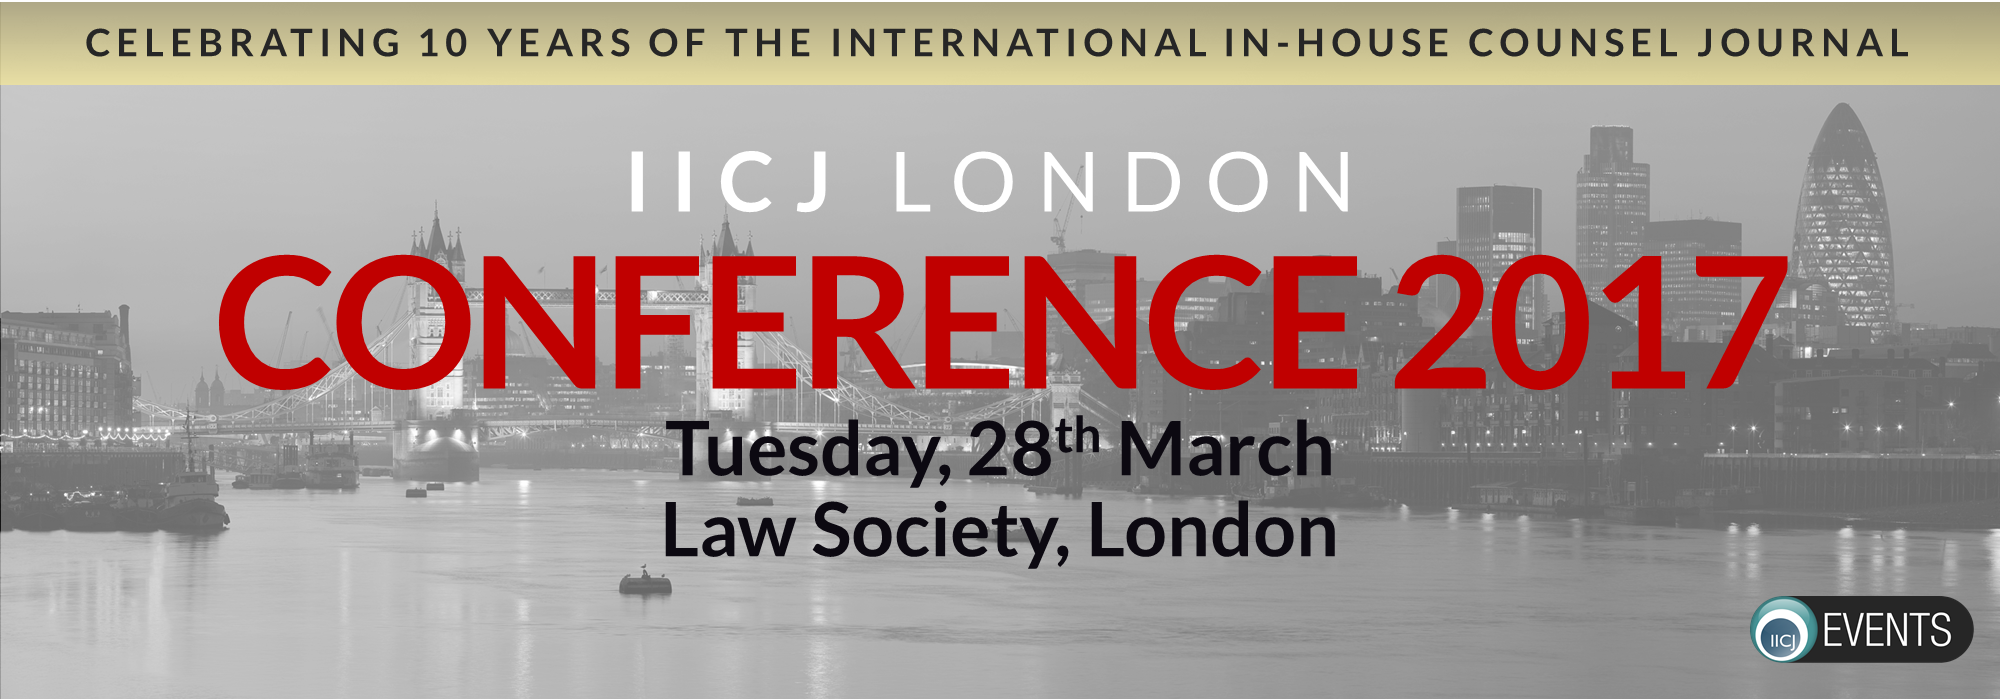 London Conference 2017